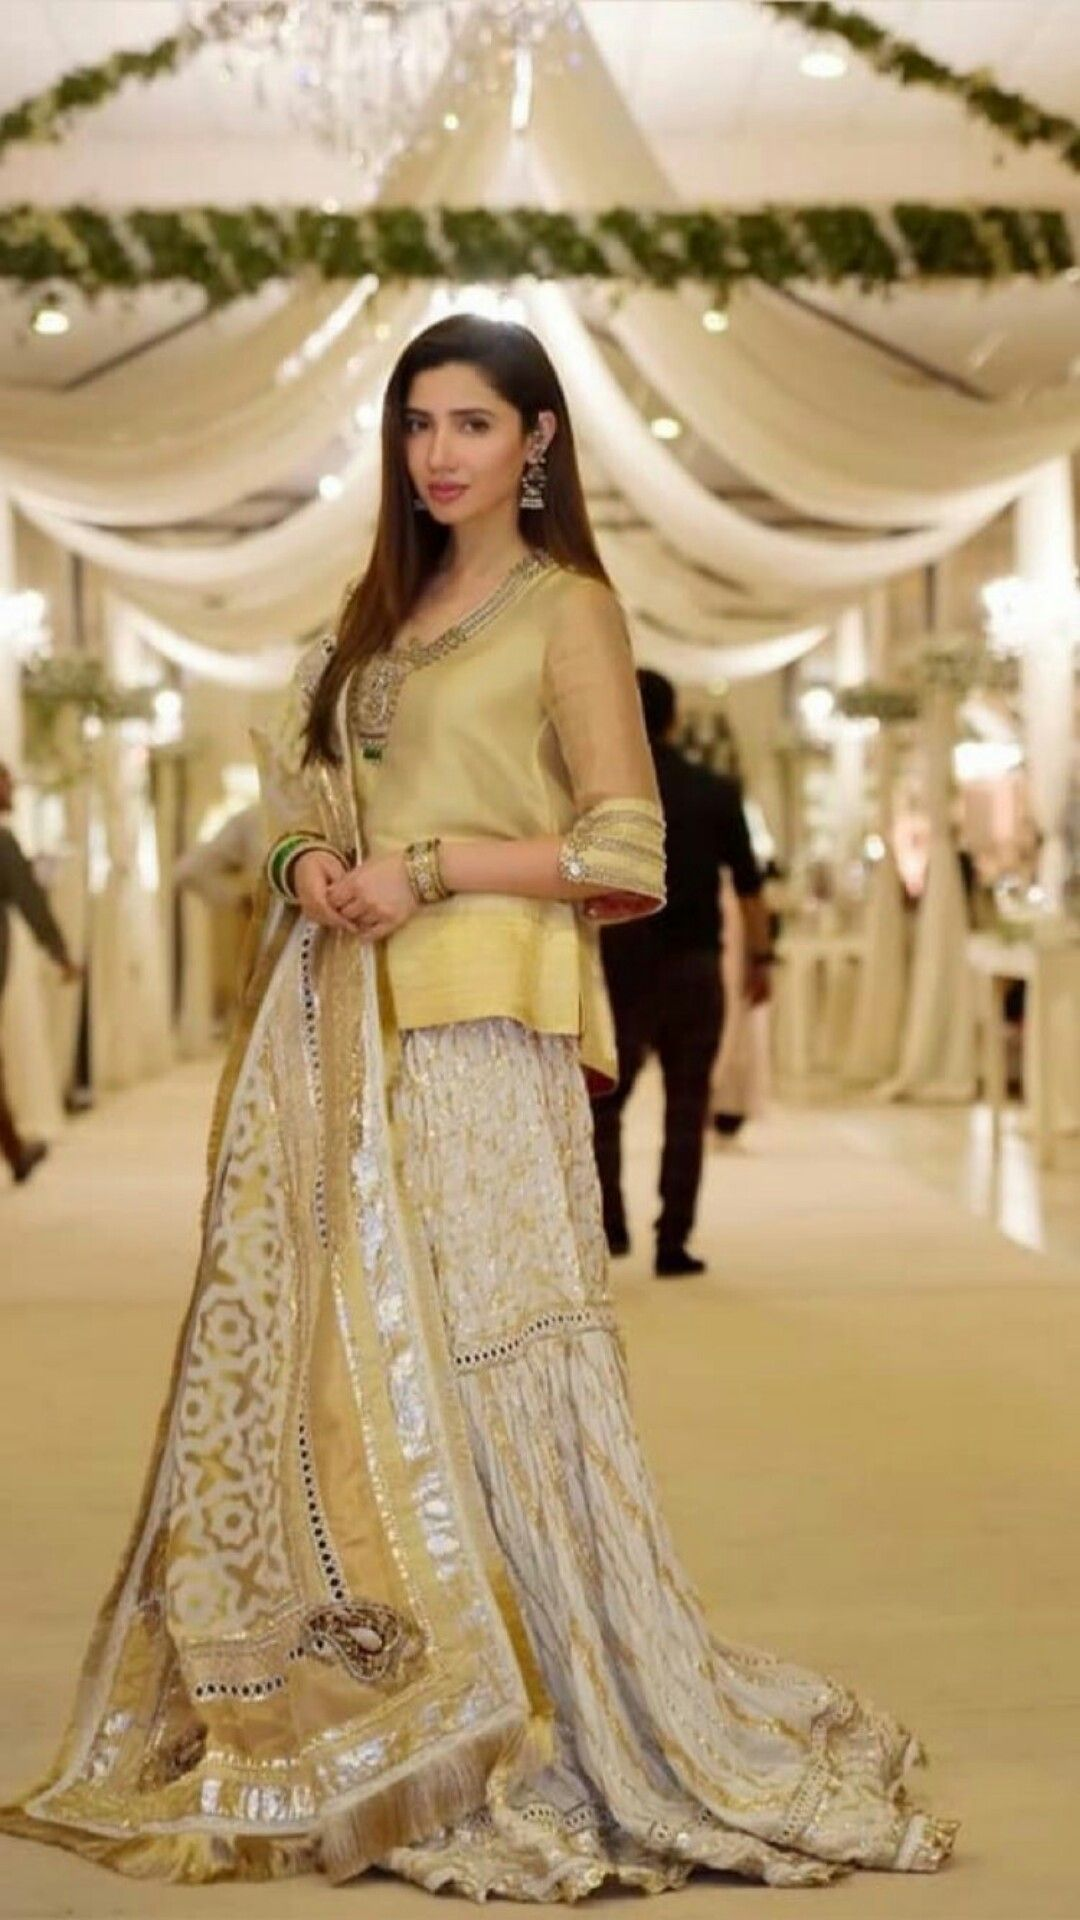 Pin by arooj rajpoot on mahira khan pinterest dresses pakistani